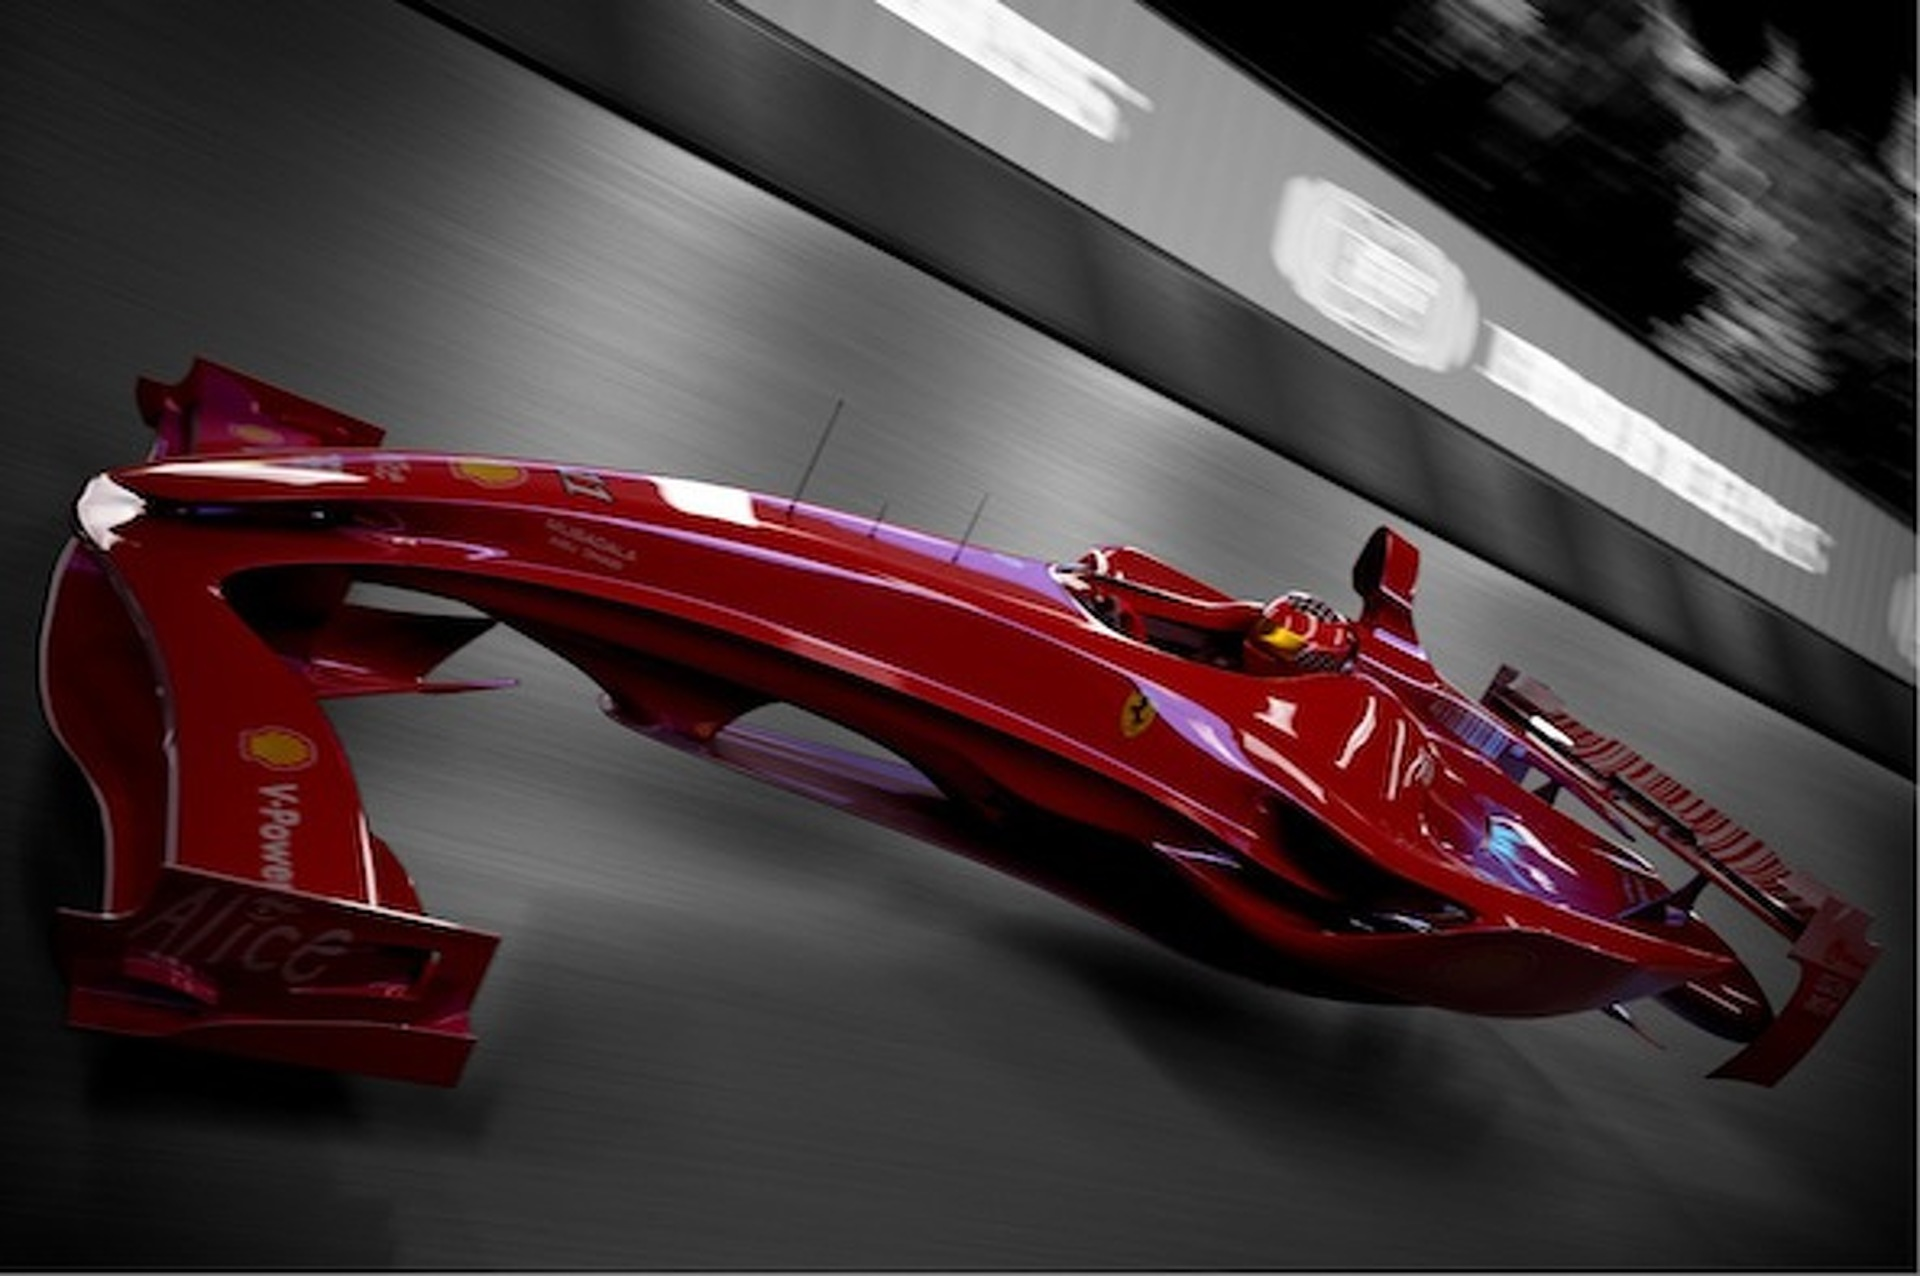 ferrari f1 hovercar concept foreshadows the future of motor racing. Black Bedroom Furniture Sets. Home Design Ideas